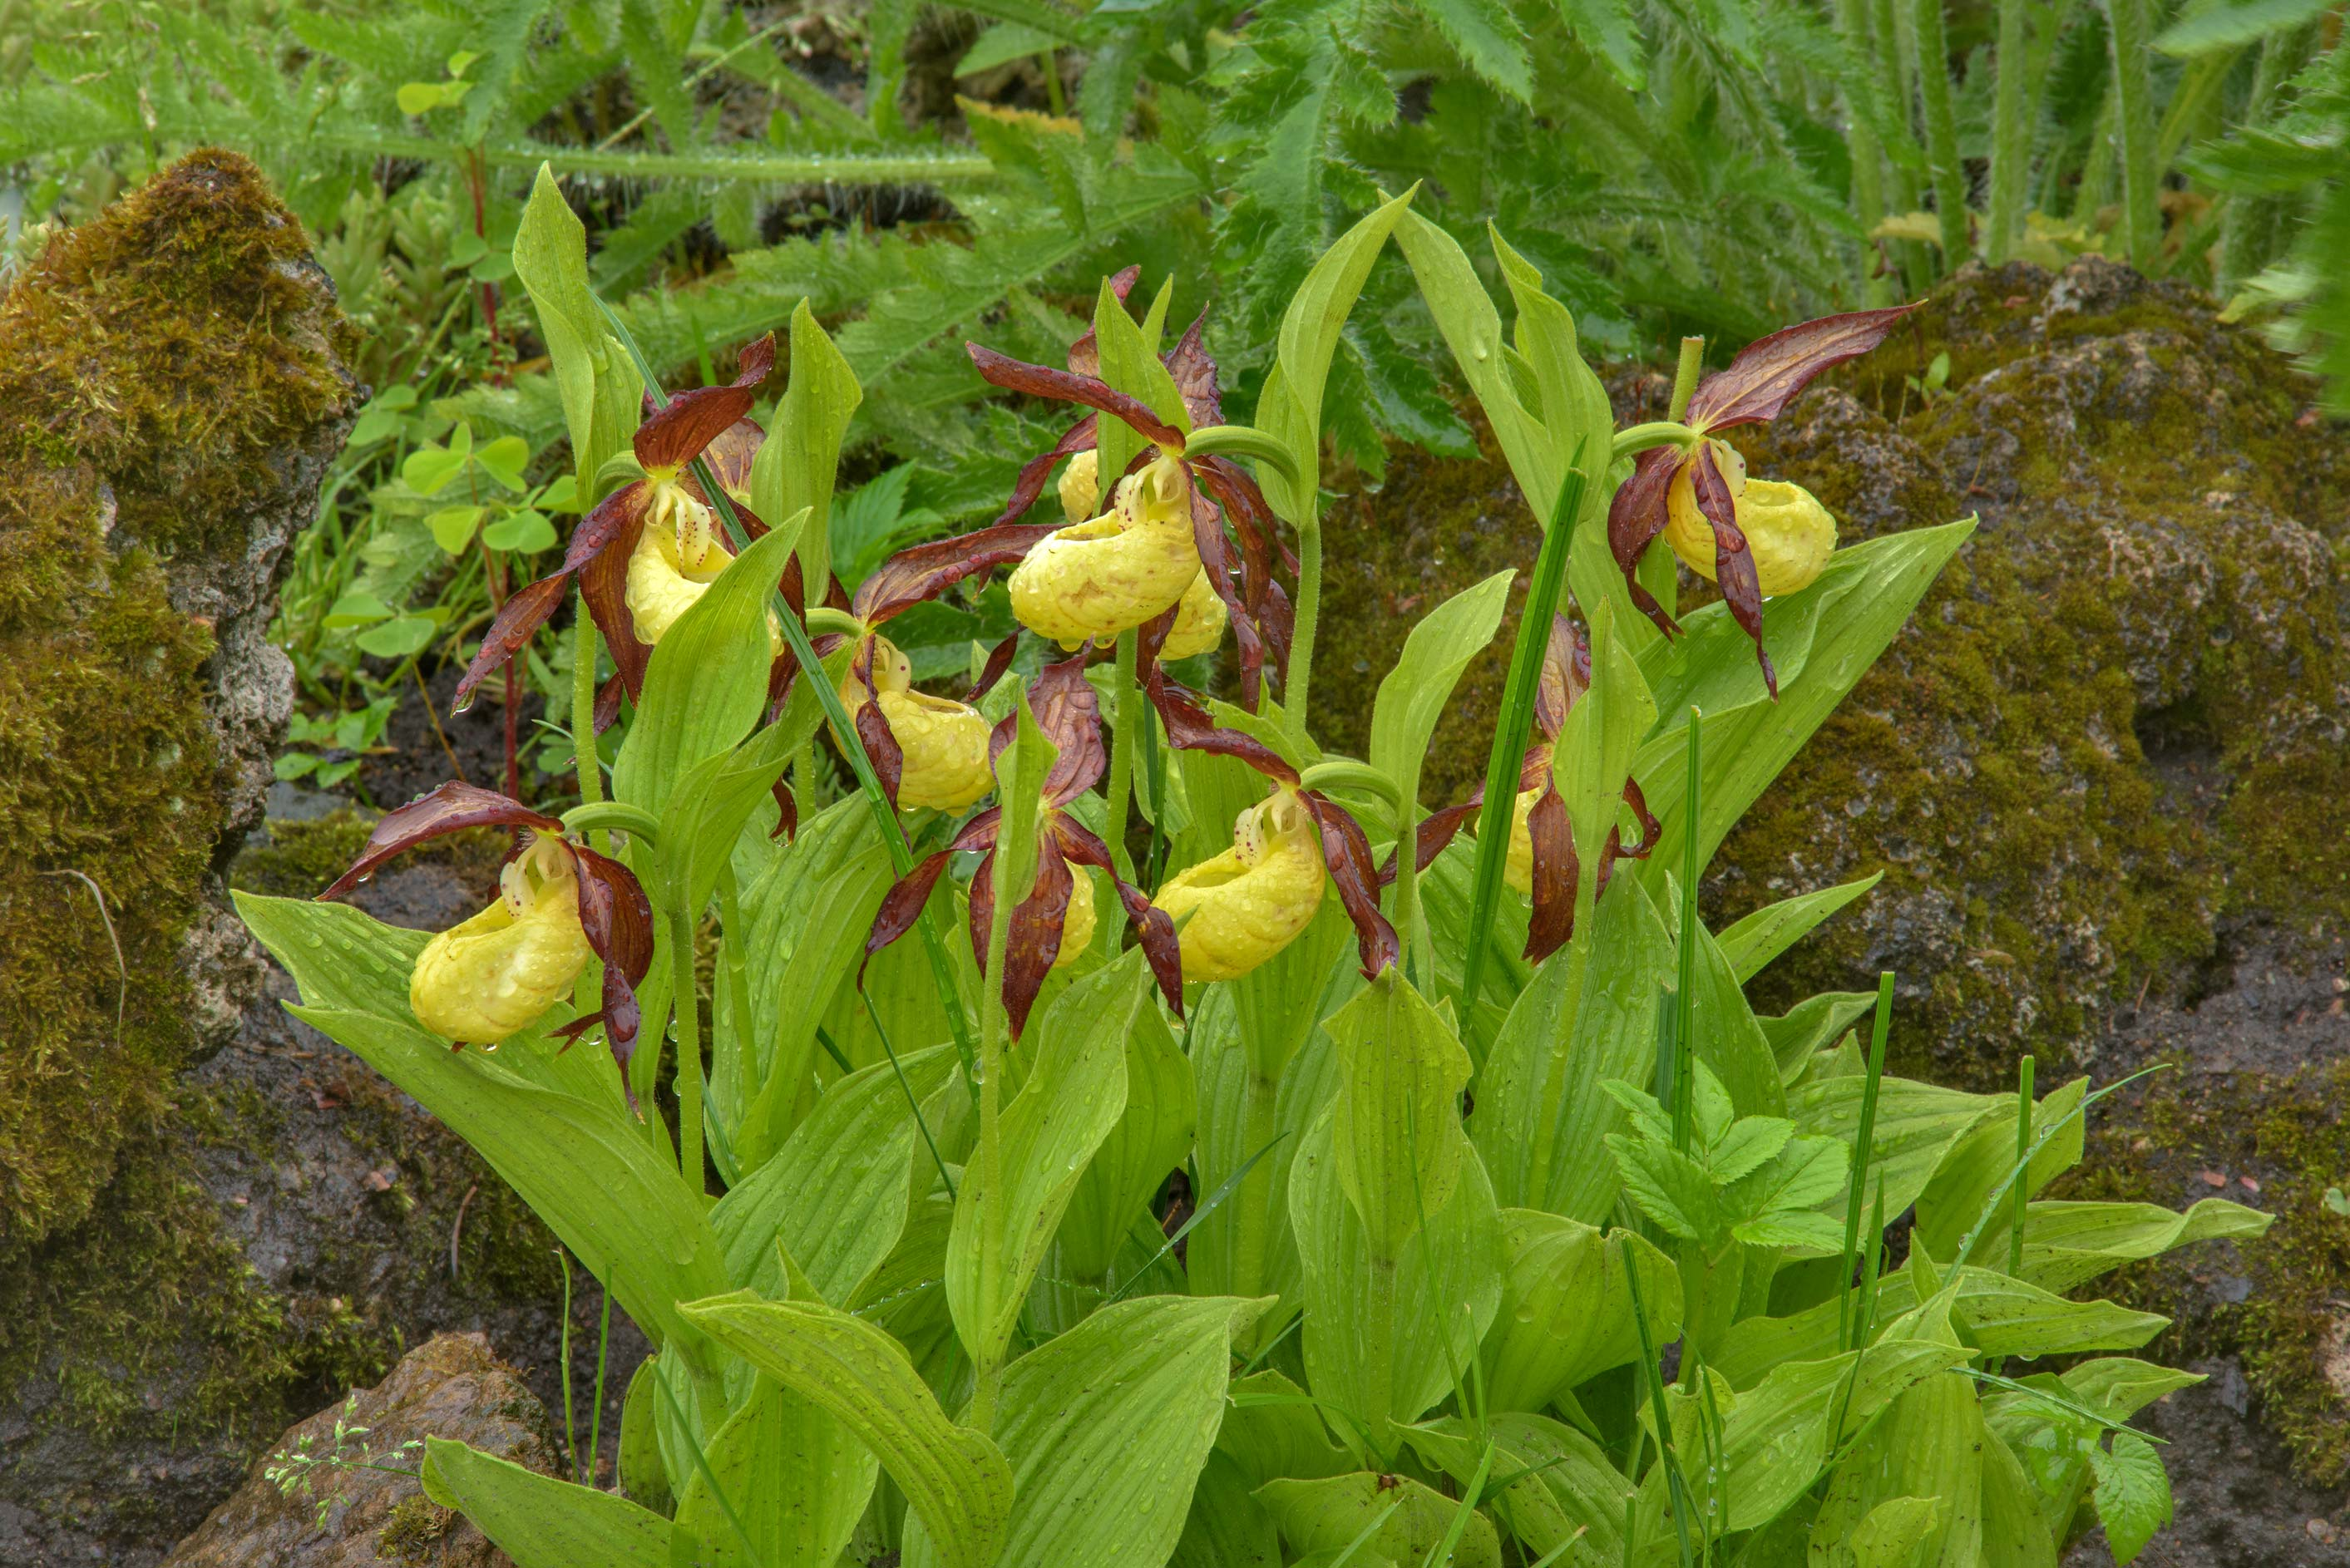 Yellow Lady's-Slipper orchid (Cypripedium...Institute. St.Petersburg, Russia